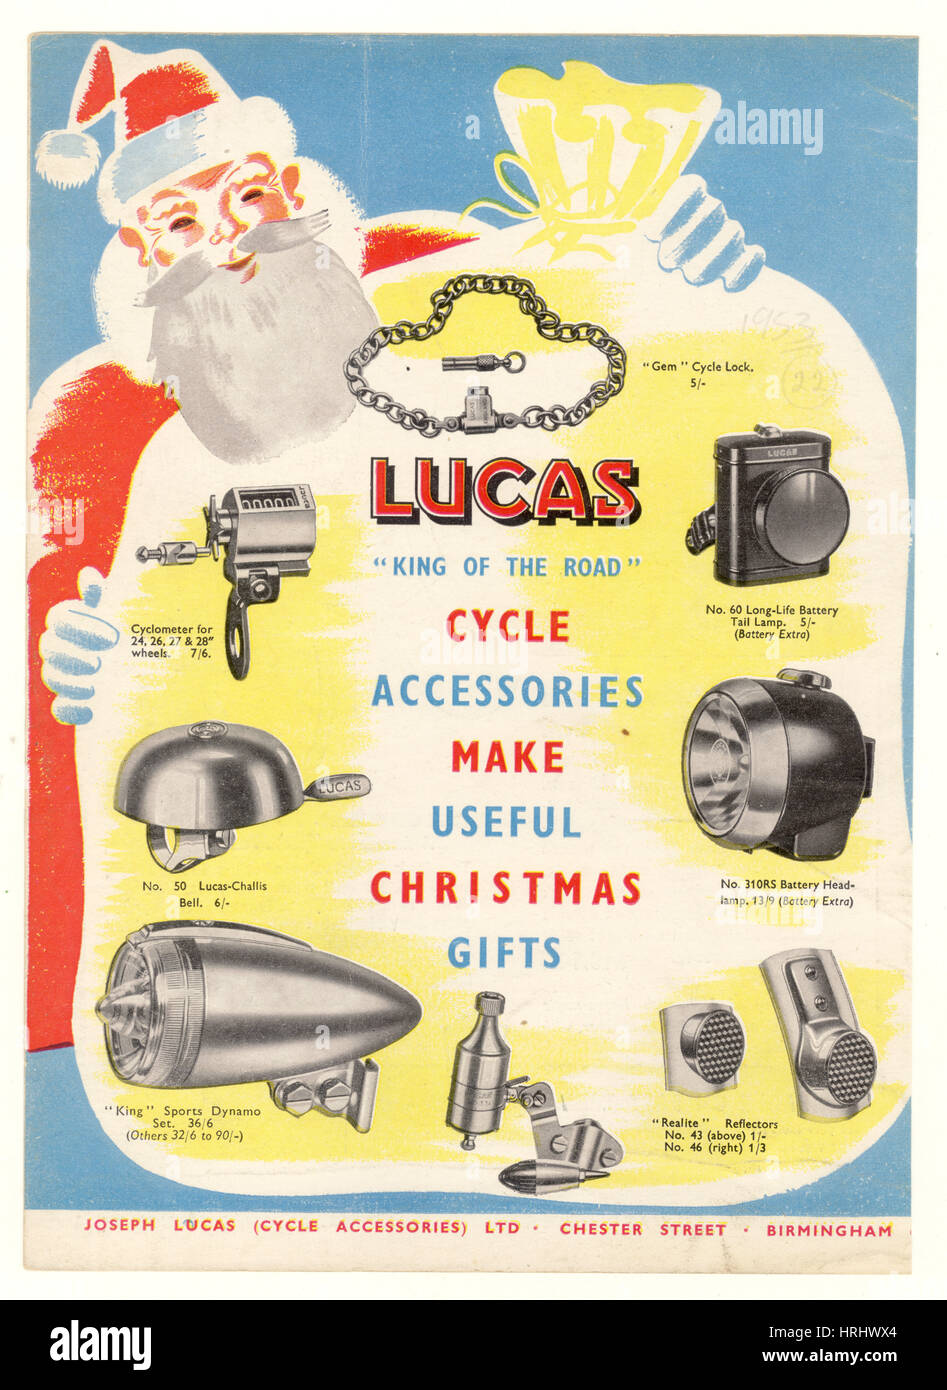 Christmas gift advertisement leaflet for Lucas cycle accessories 1950's, U.K. - Stock Image